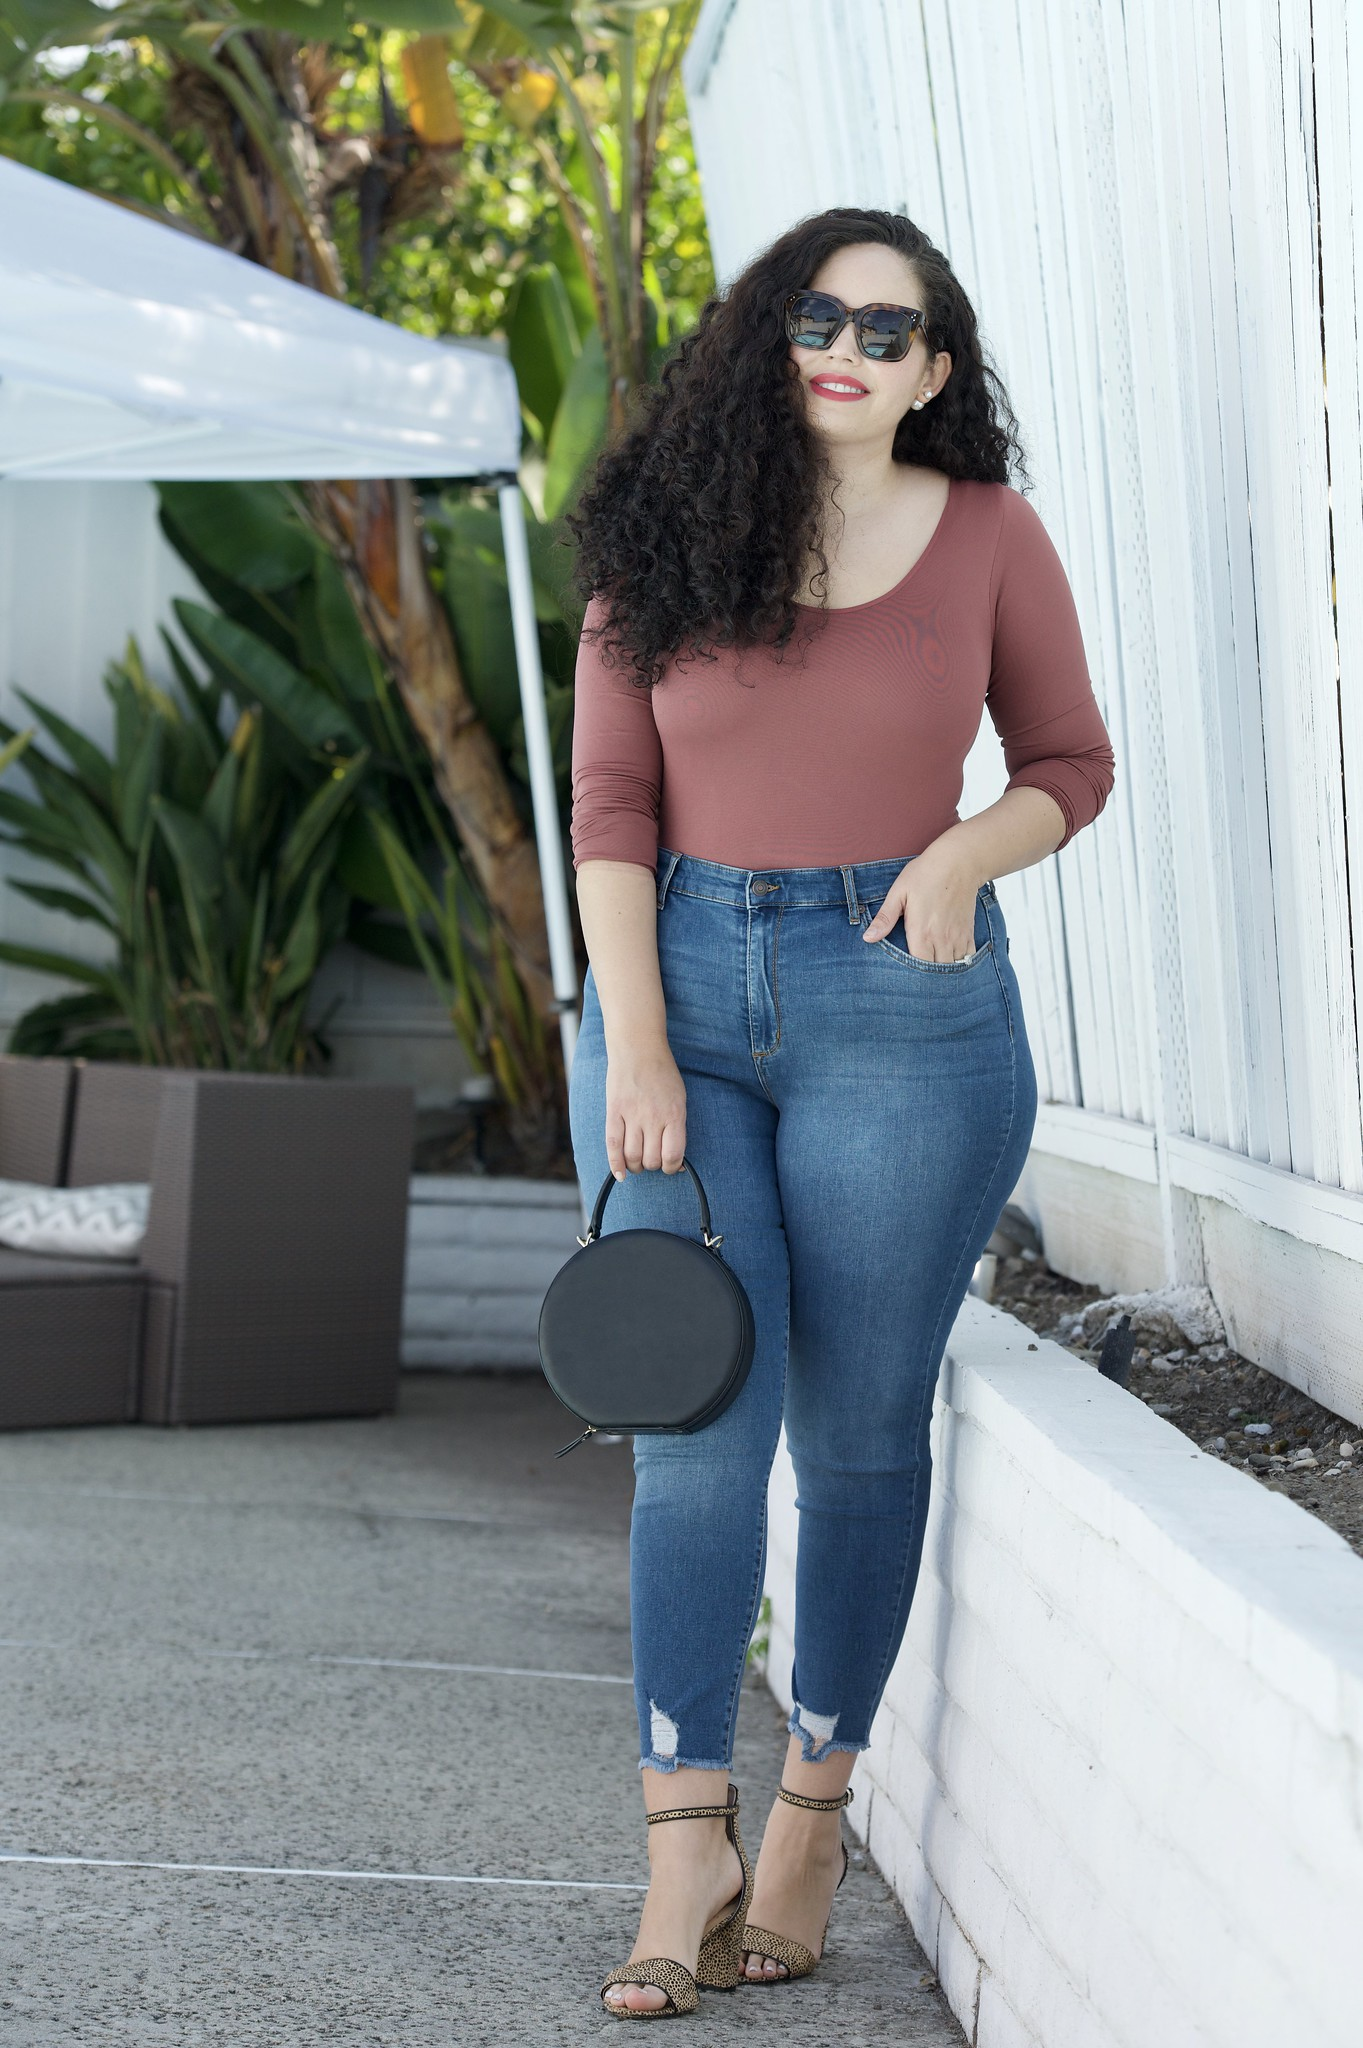 These are the Best Curvy Fit Jeans under $25 | Girl With Curves